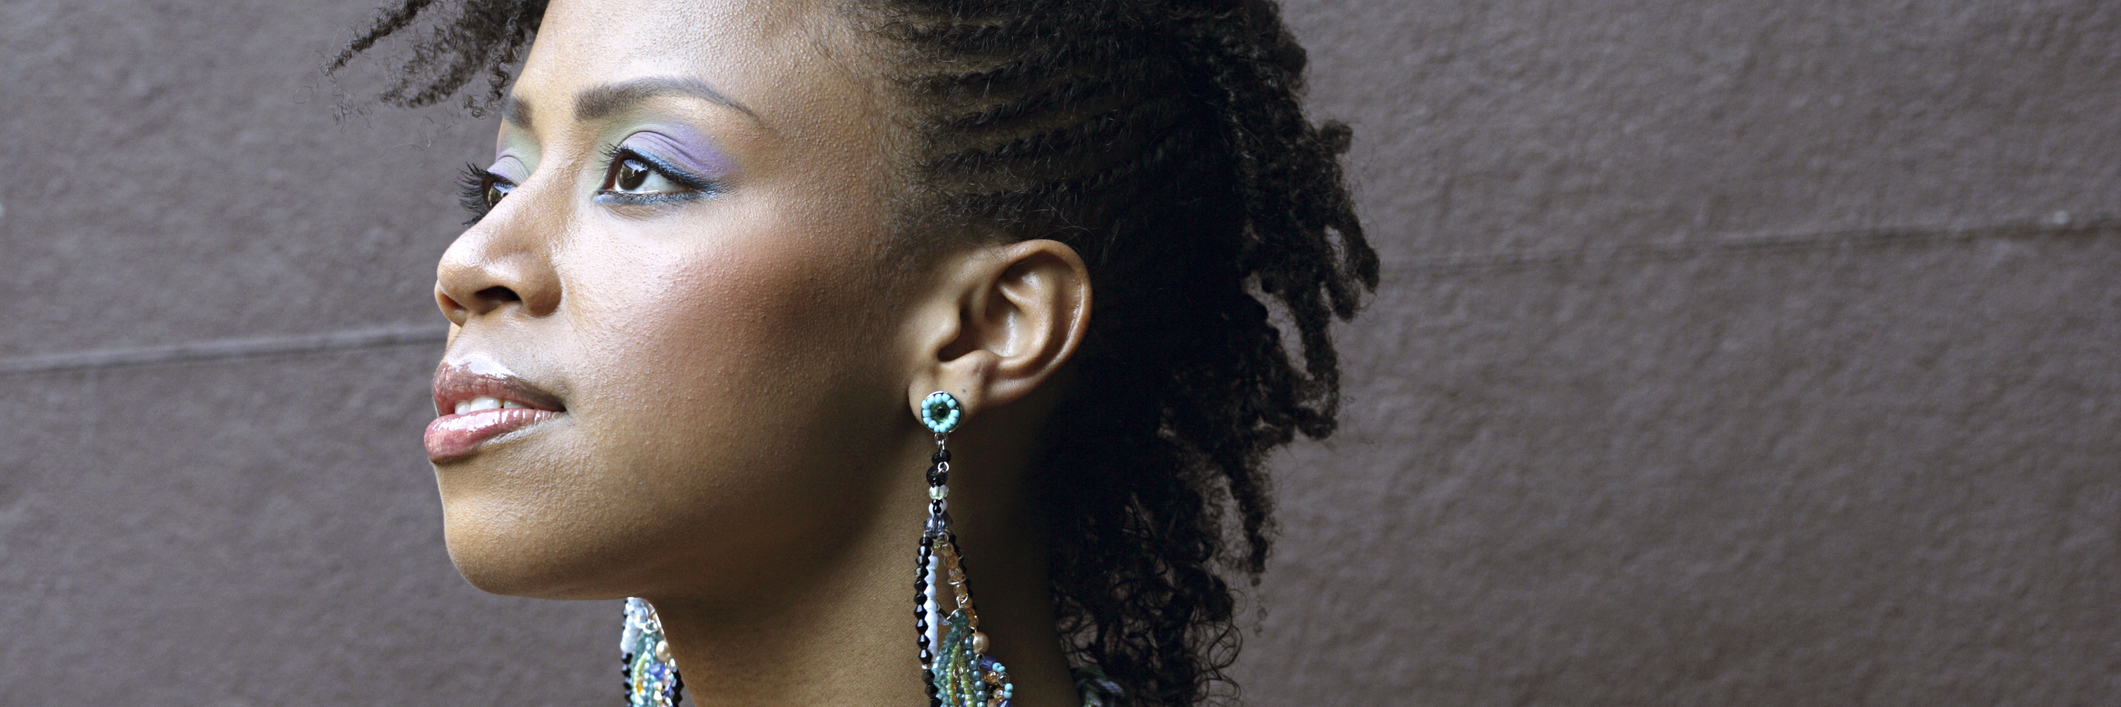 portrait of a woman with colorful earrings looking off into the distance